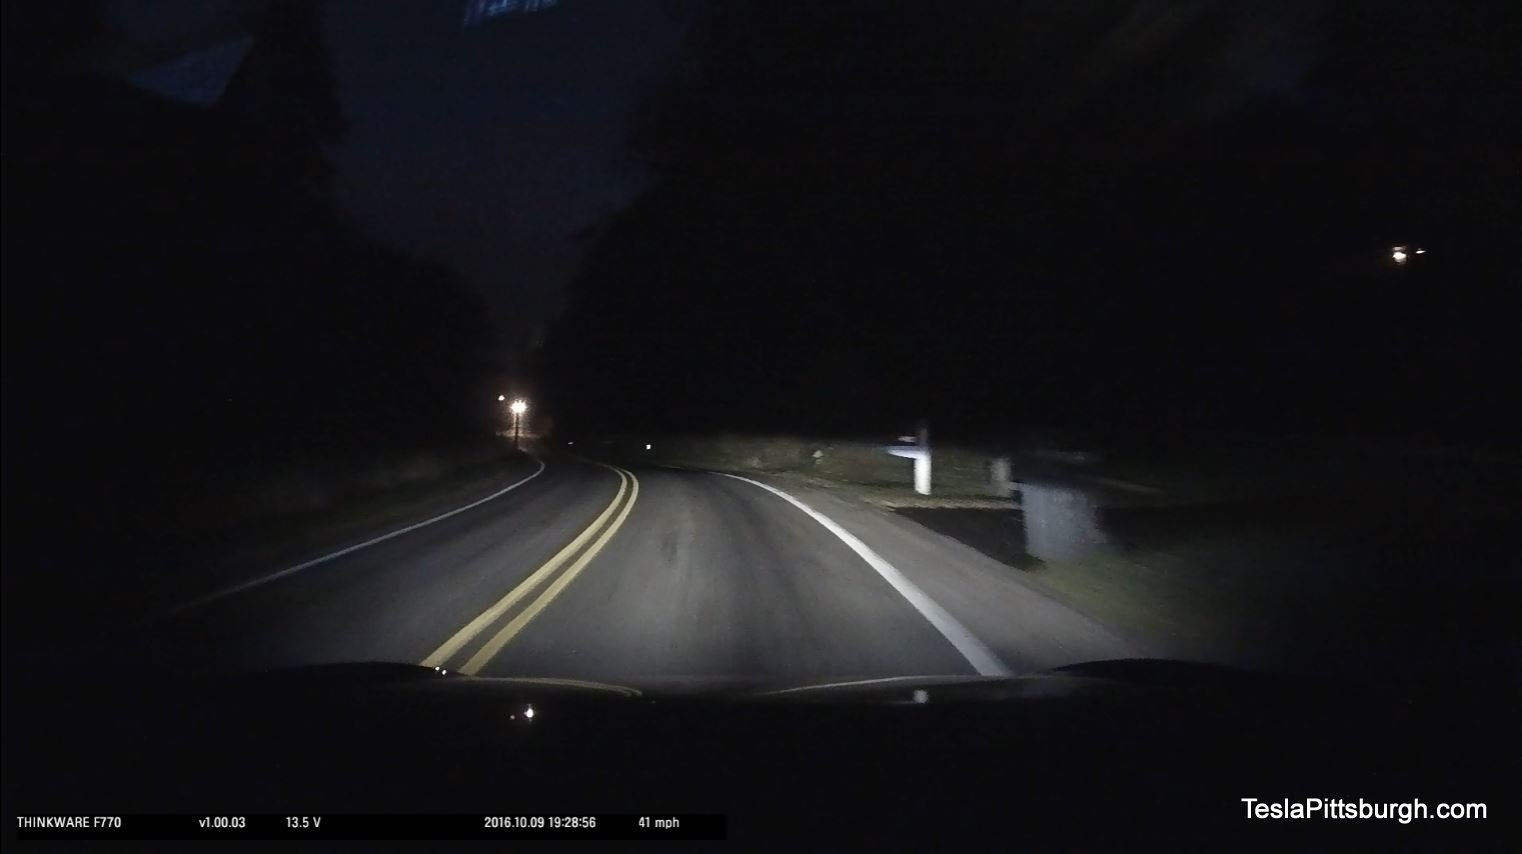 tesla-pittsburgh-dashcam-review-thinkware-f770-camera-mingo-night-driveway